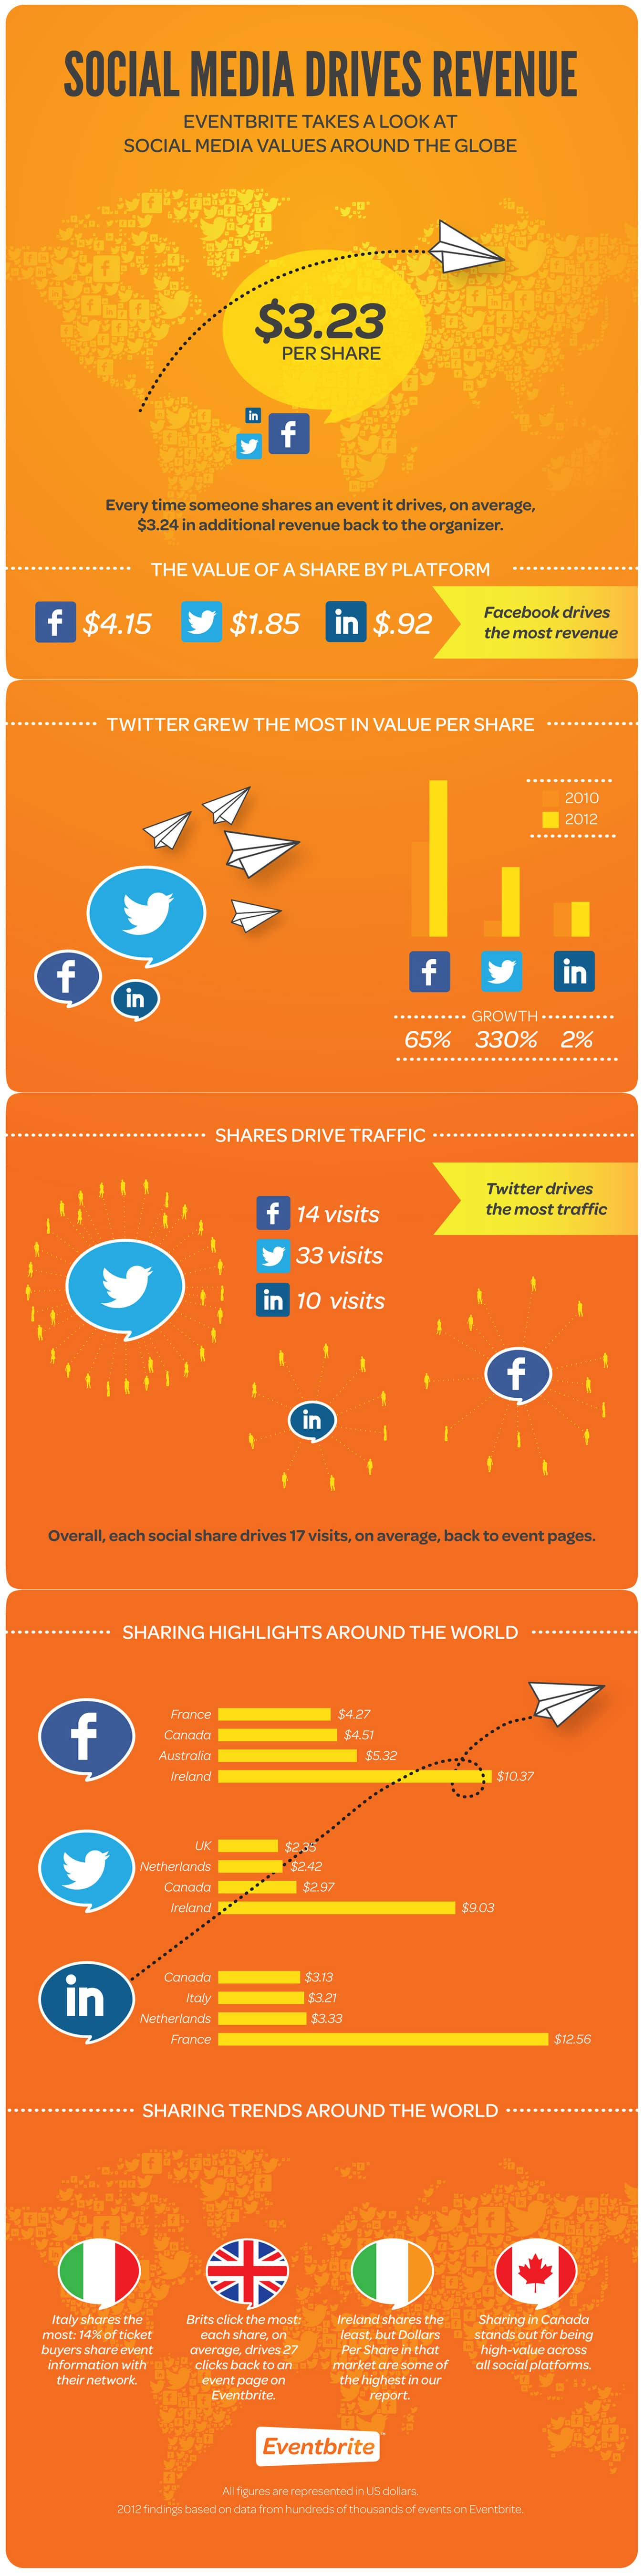 Dollar Value Of Social Media Shares & How It's Changed [Infographic]